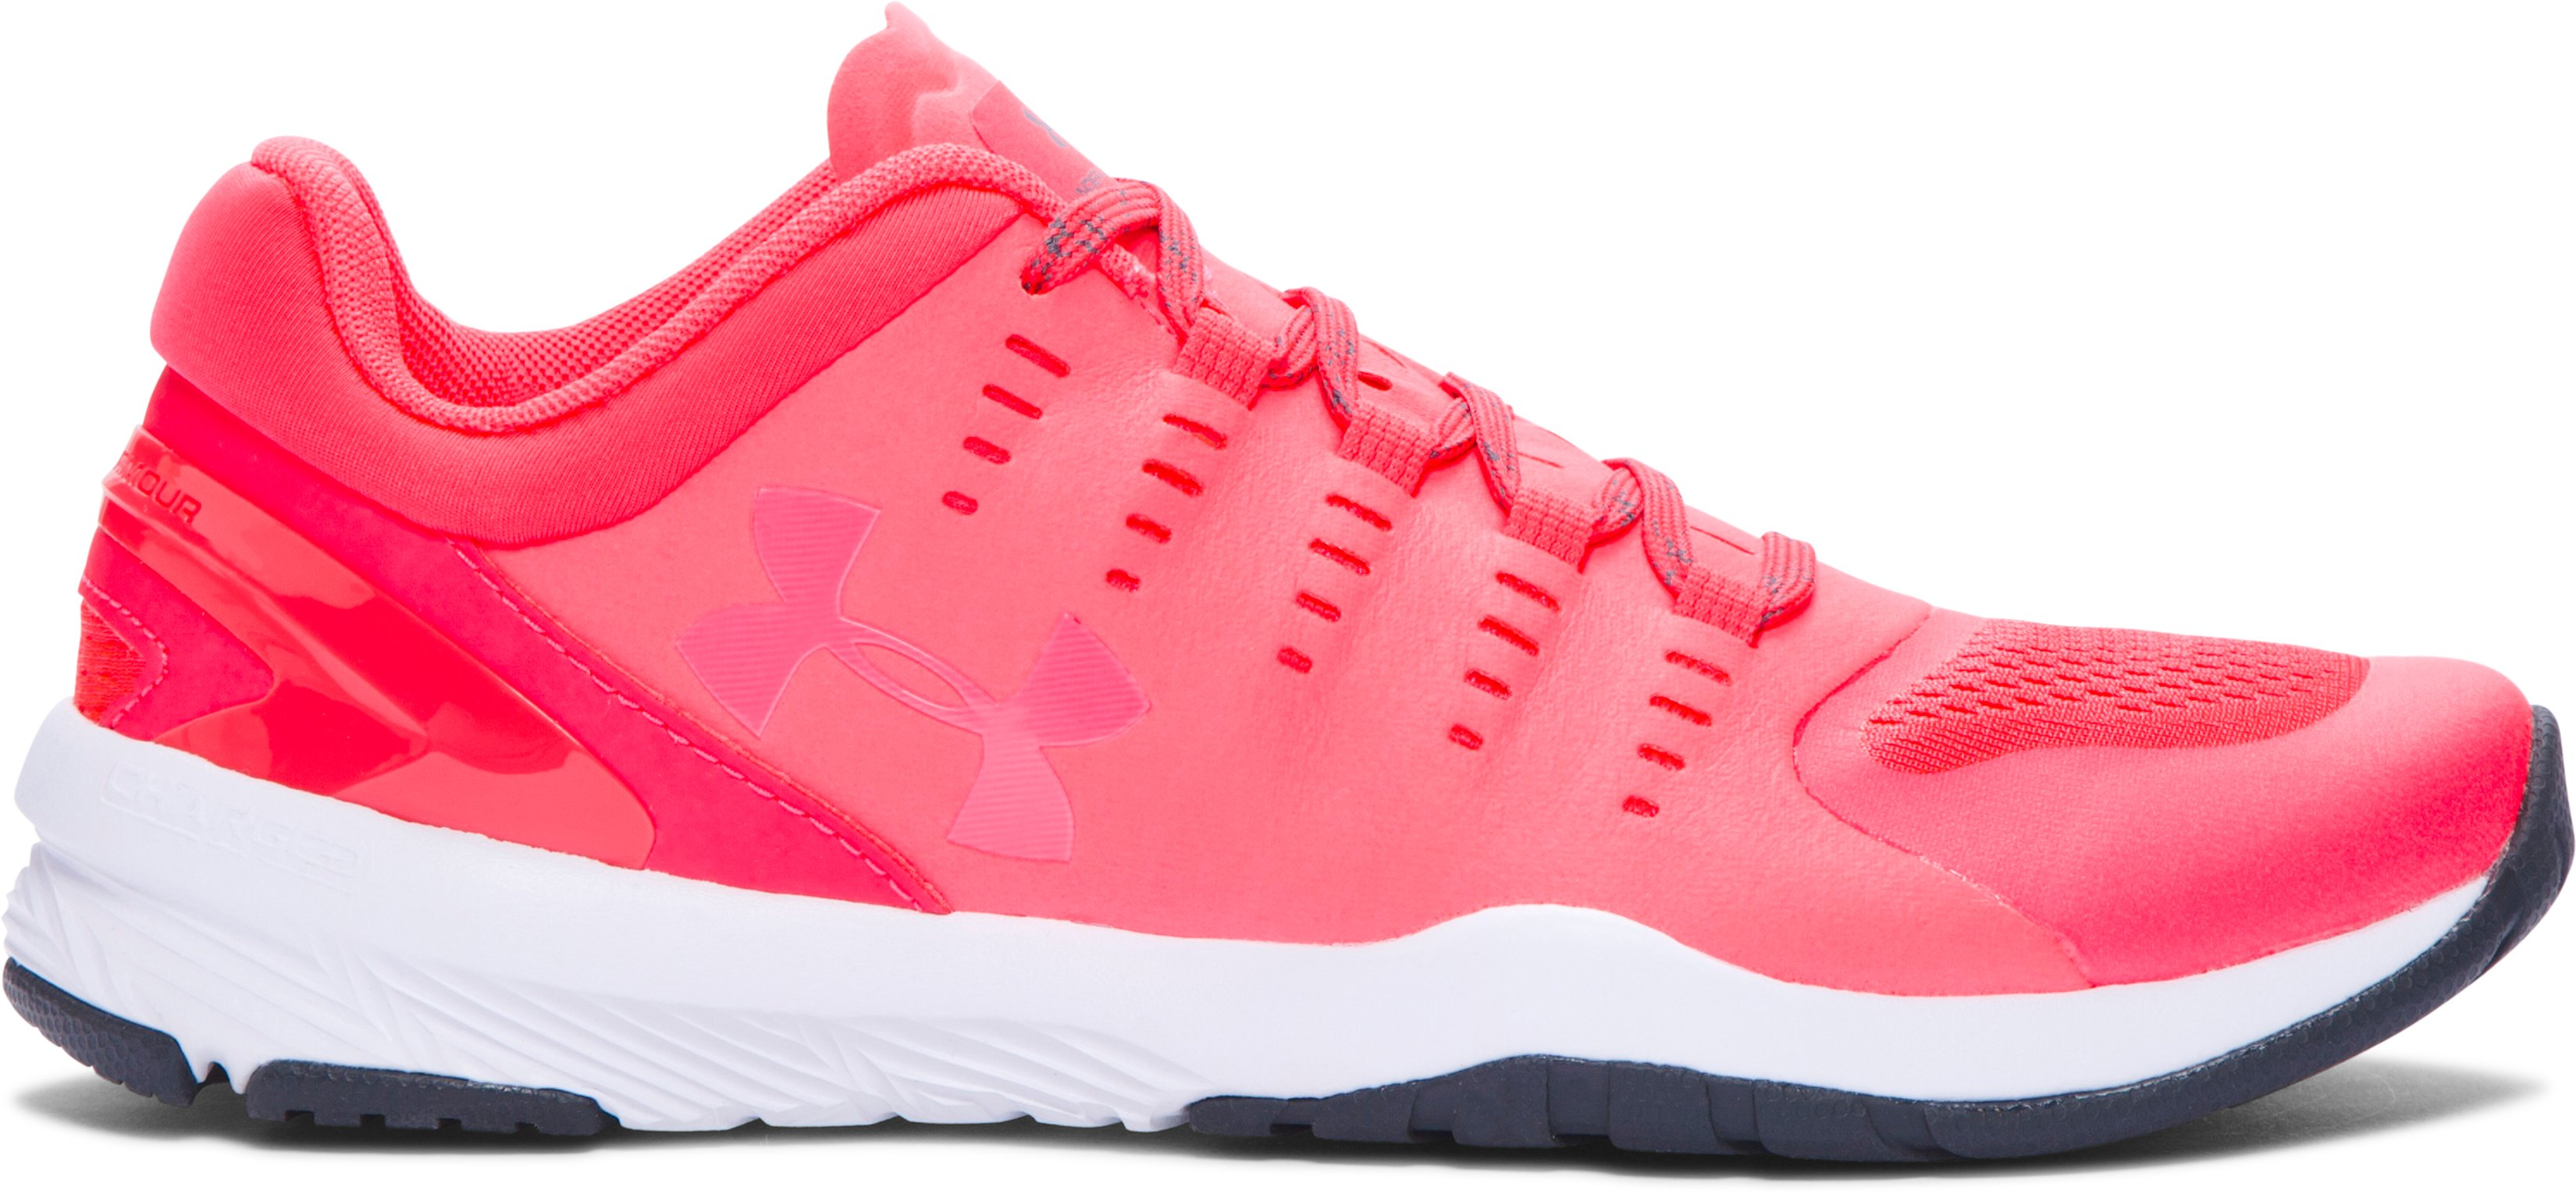 Women's UA Charged Stunner Training Shoes, PINK CHROMA